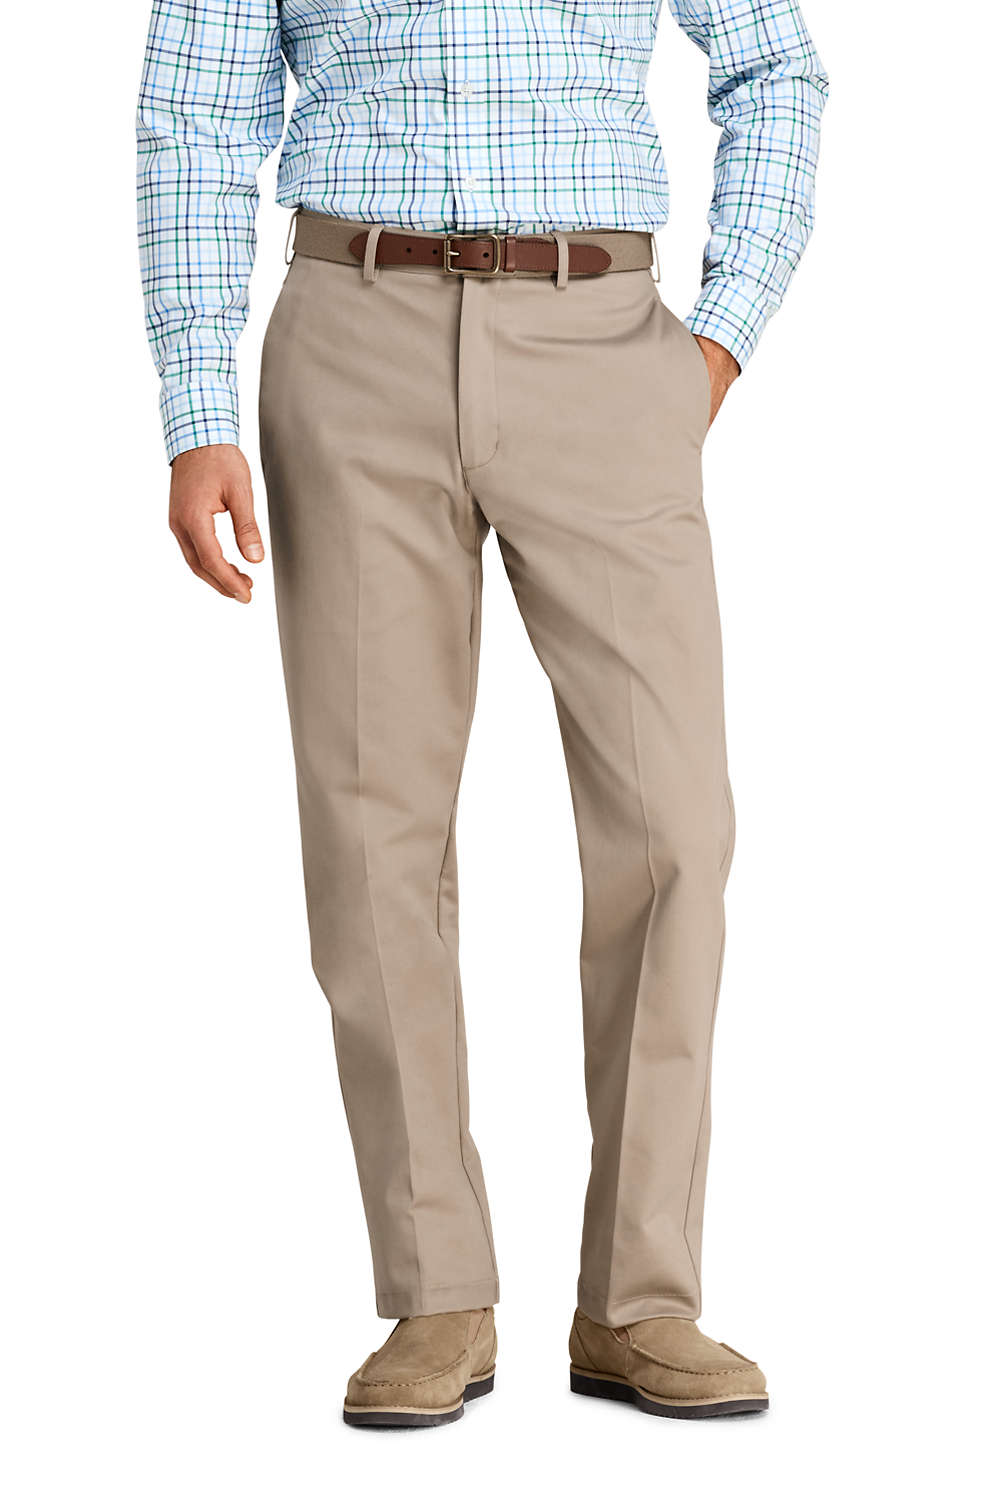 1a2b12acbc70f Men's Traditional Fit Plain No Iron Chinos from Lands' End